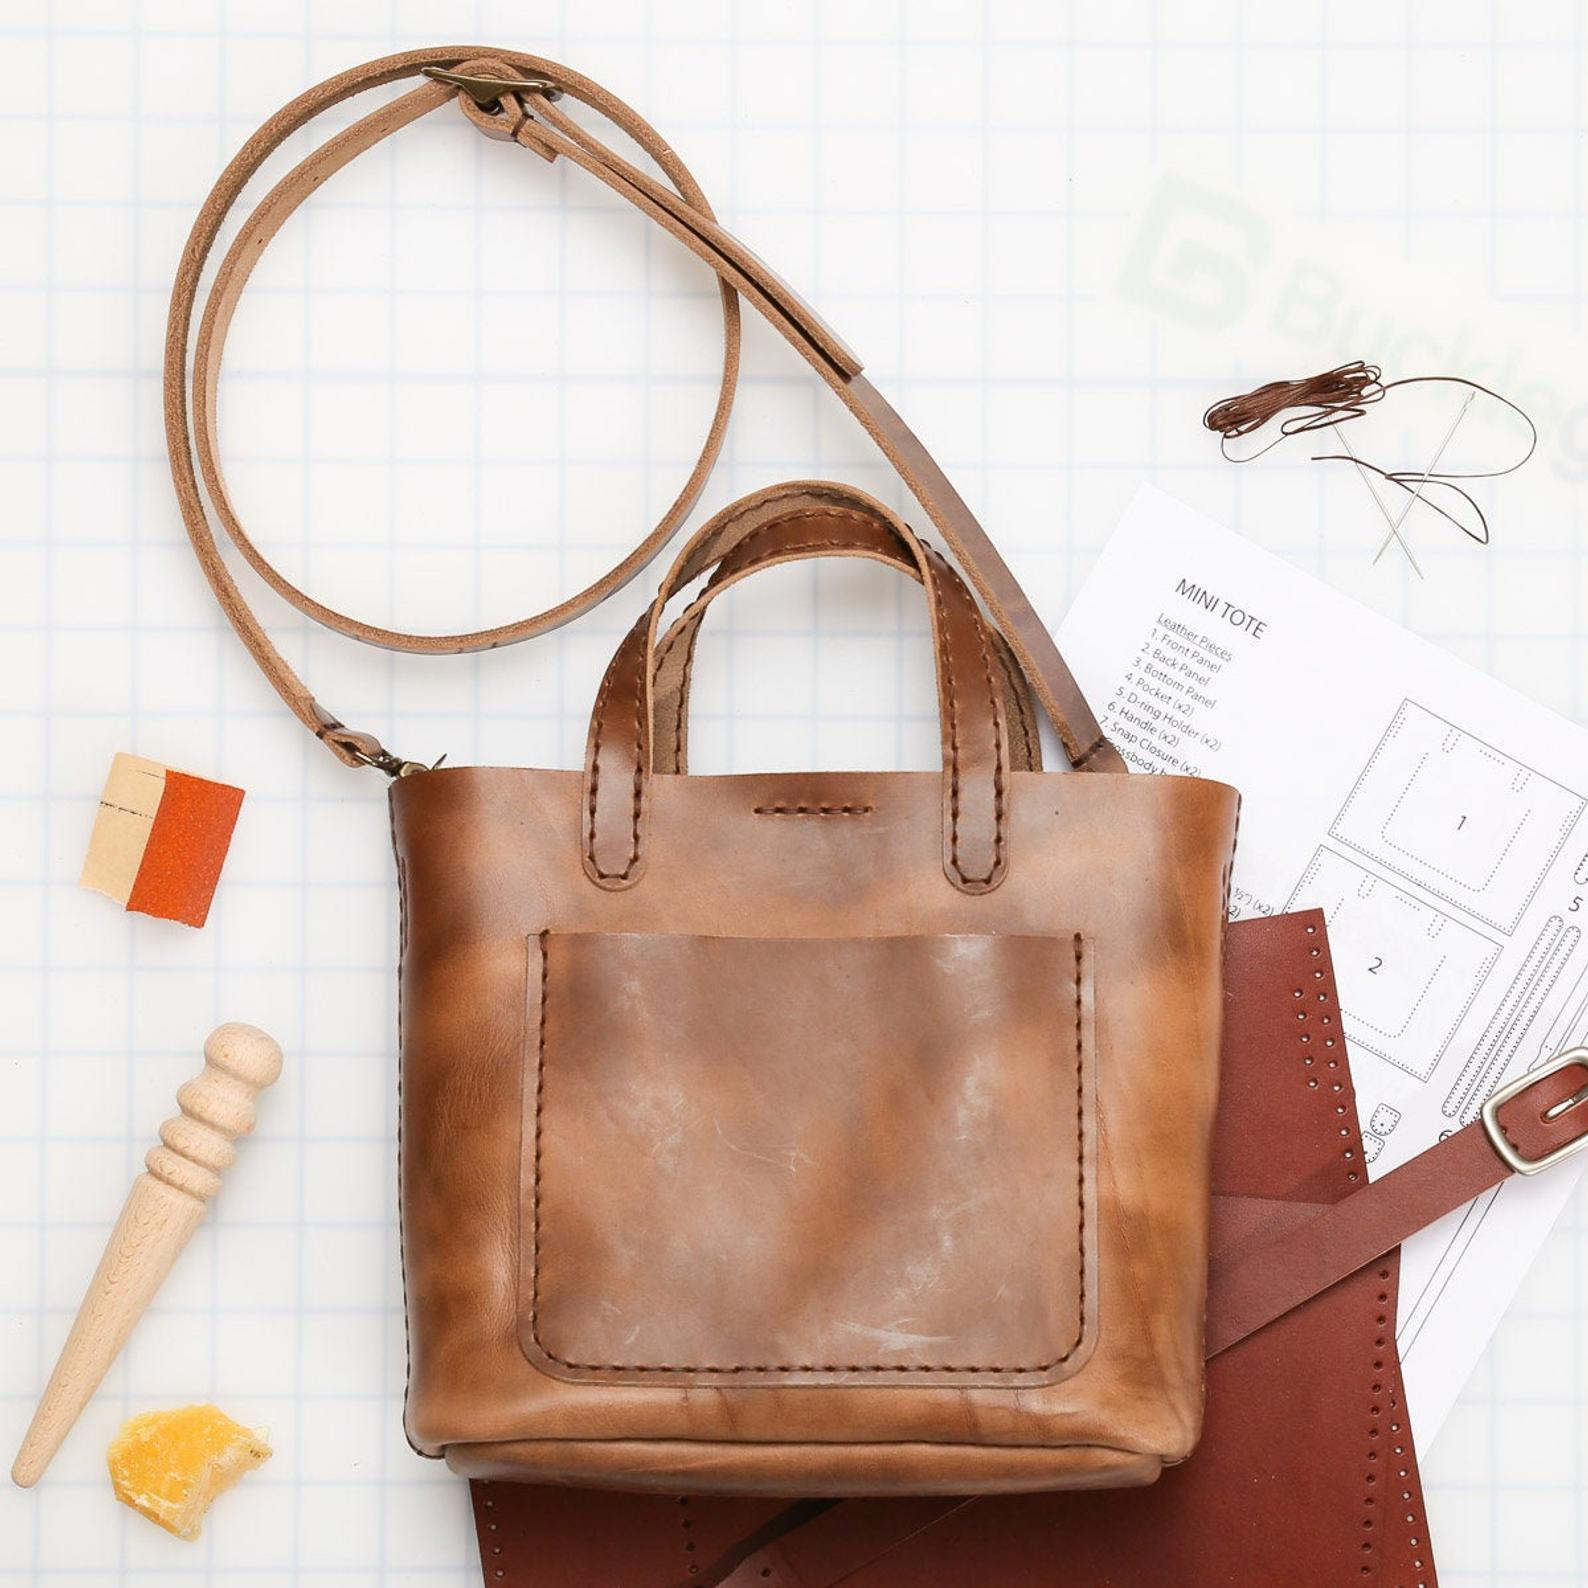 mini leather tote craft kit gift ideas